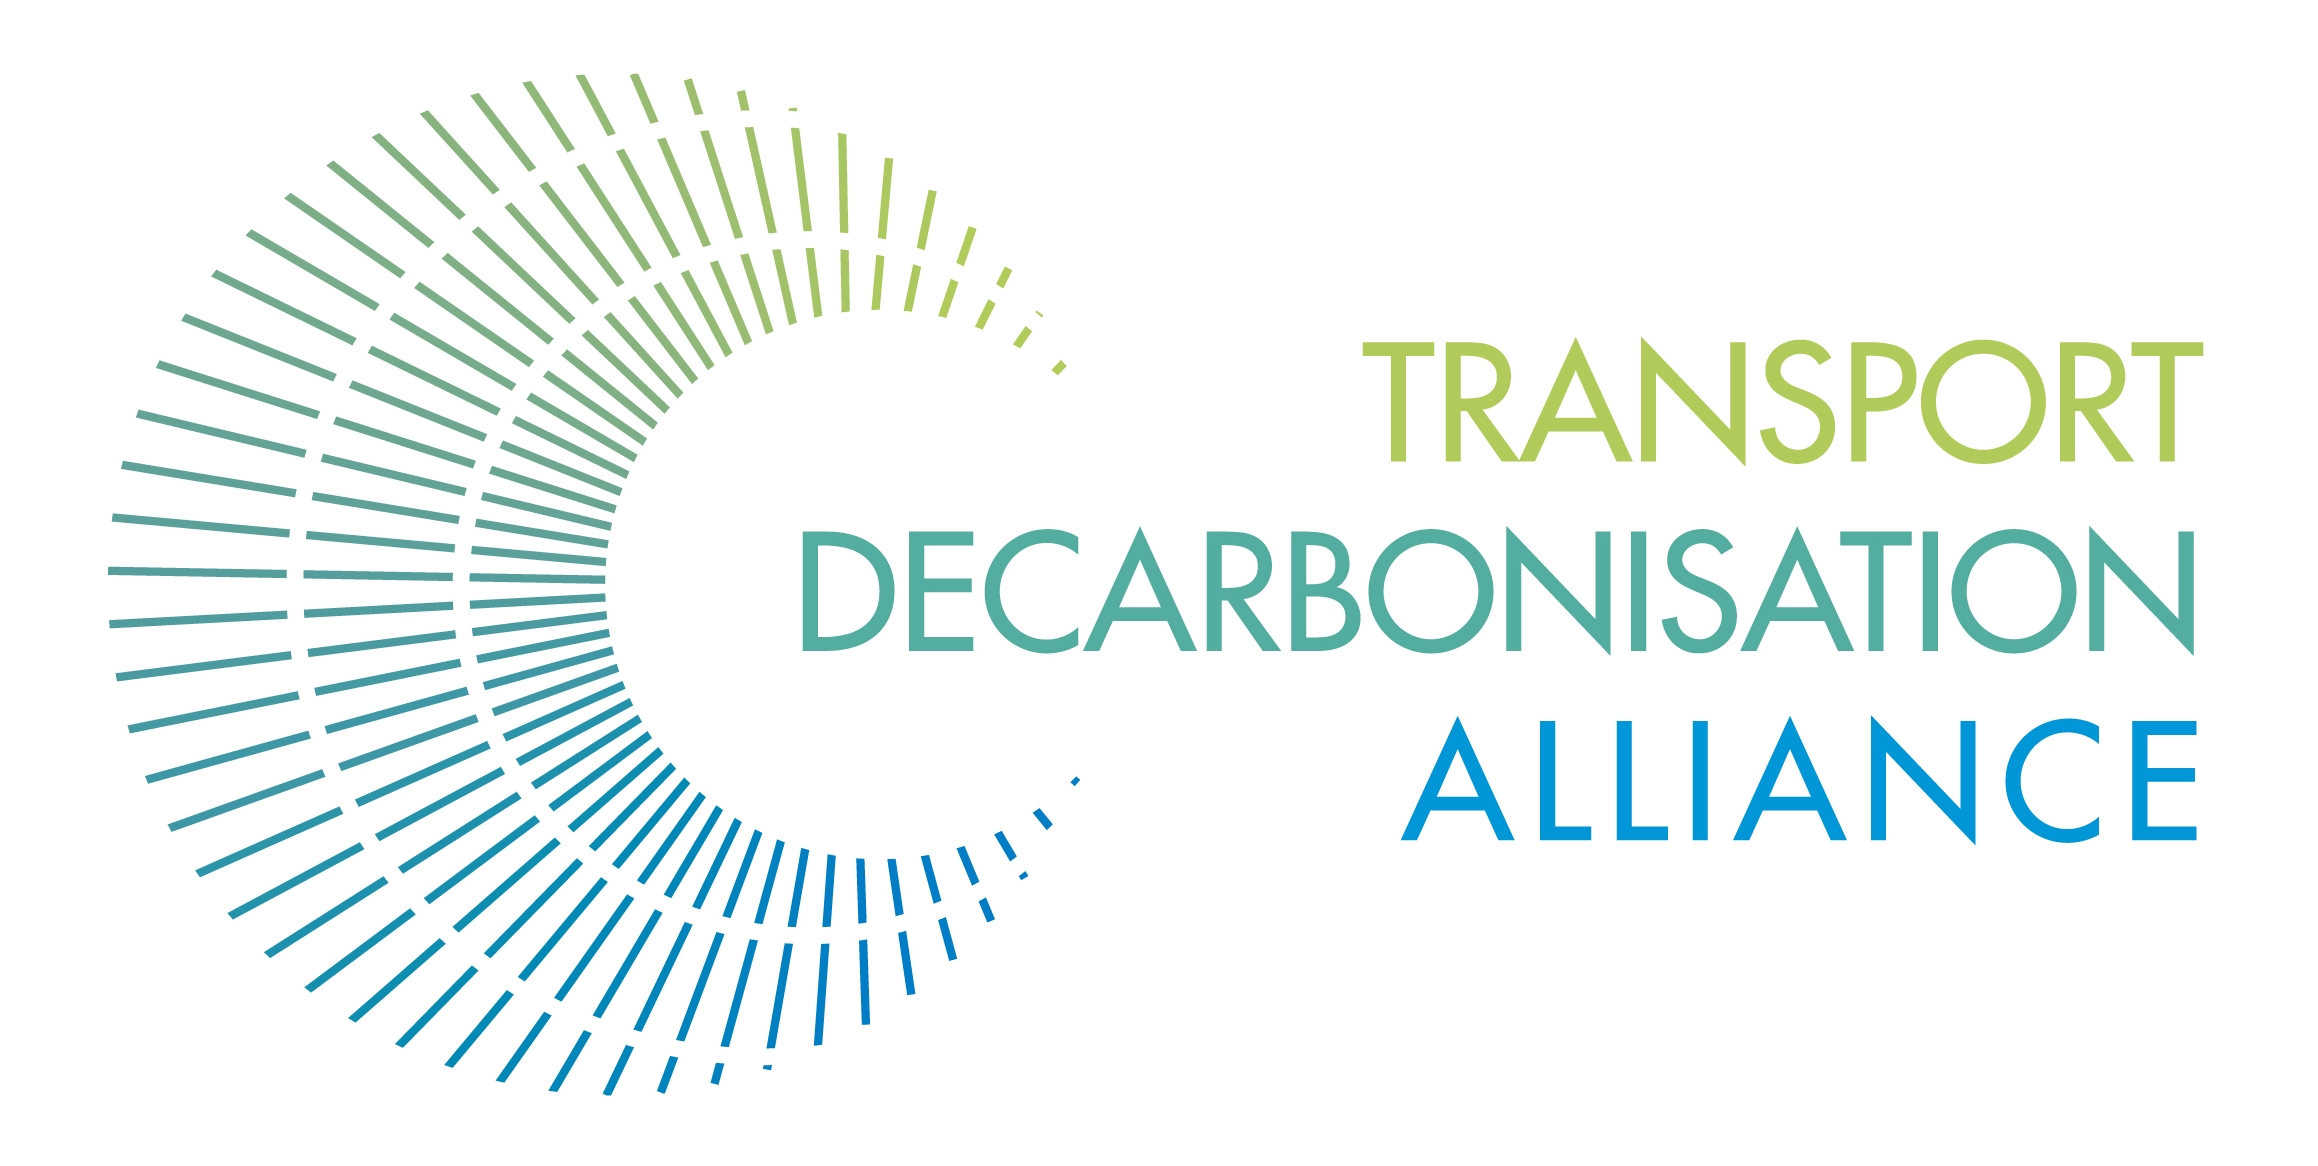 TRANSPORT DECARBONISATION ALLIANCE TDA